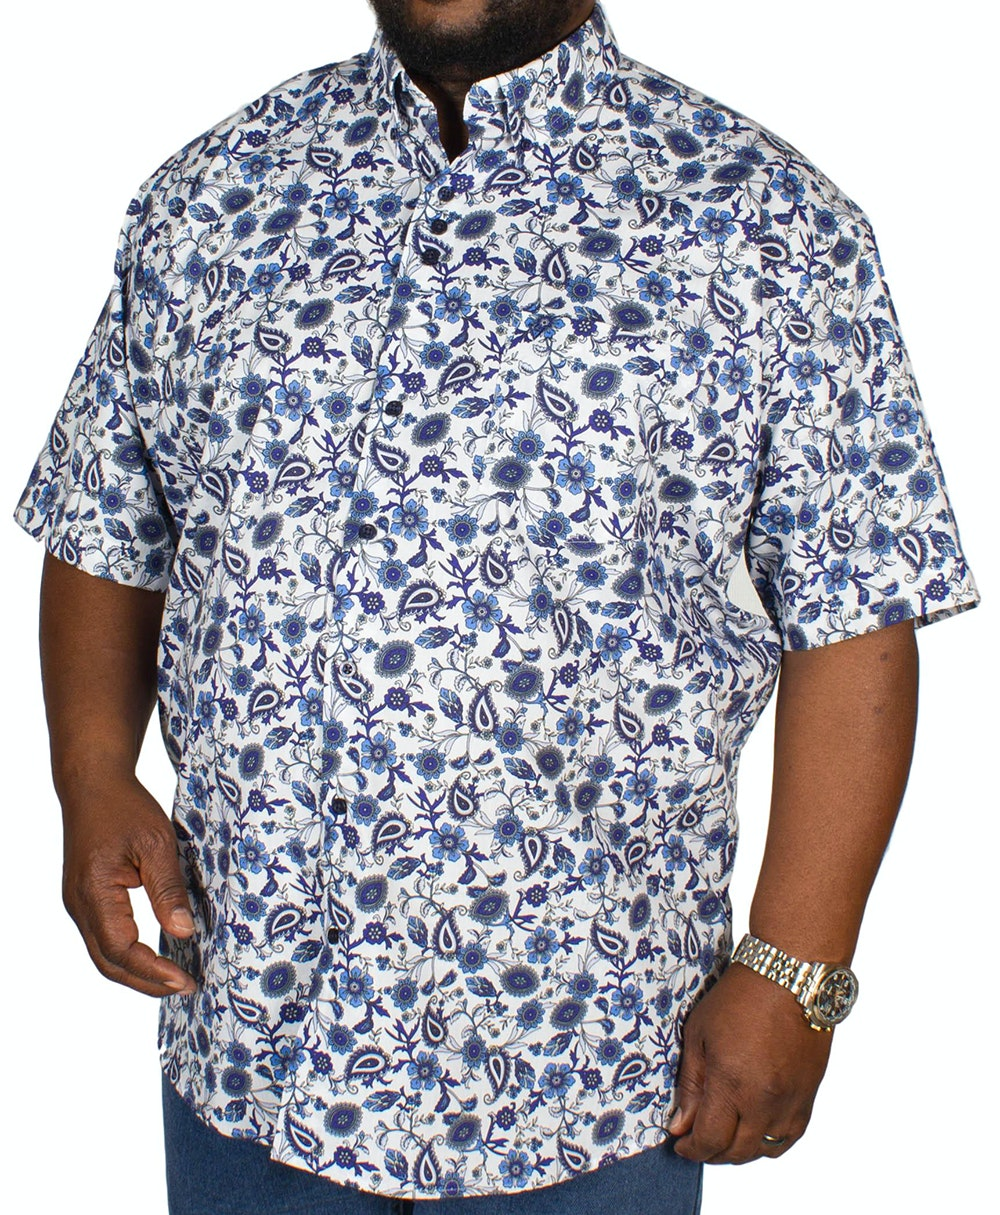 Cotton Valley Floral Short Sleeve Shirt Blue